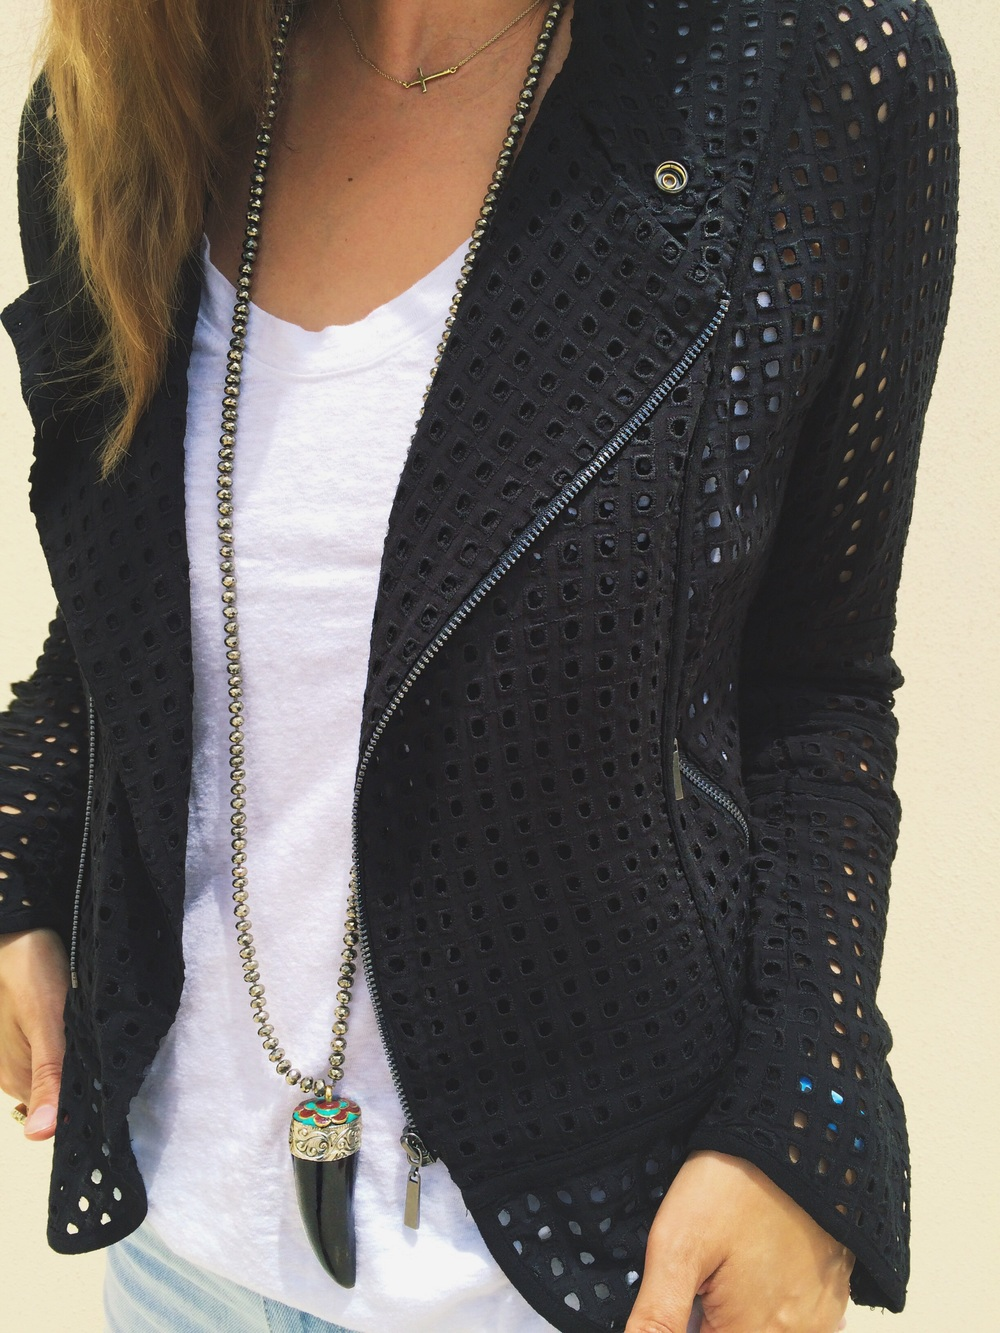 Love this jacket for Summer layering! Jacket:  Nordstrom  Necklace: Frasier Sterling (her designs  here  and similar  here )